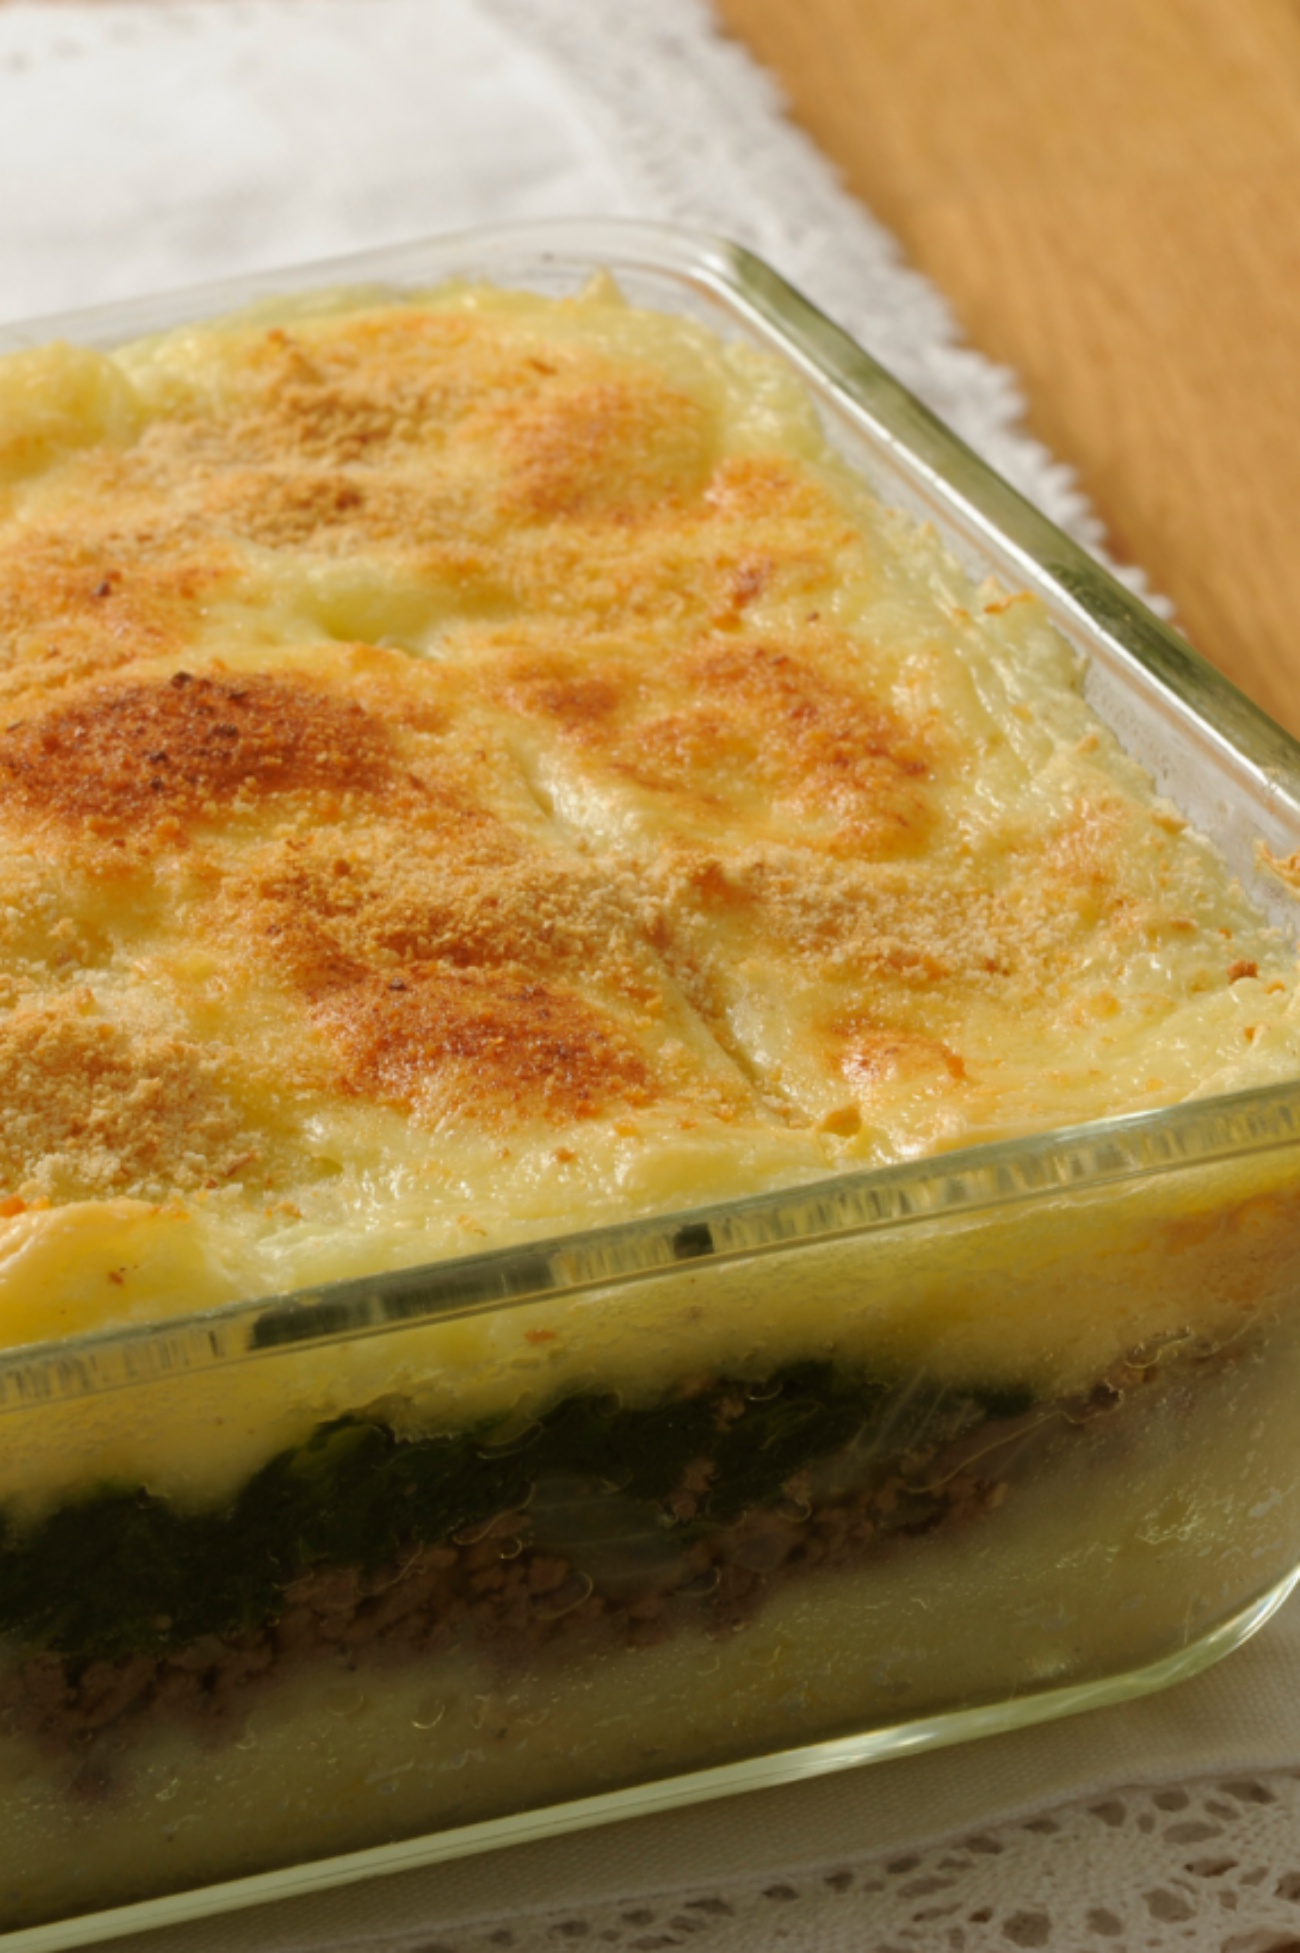 Baking dish with potato, spinach, minced meat